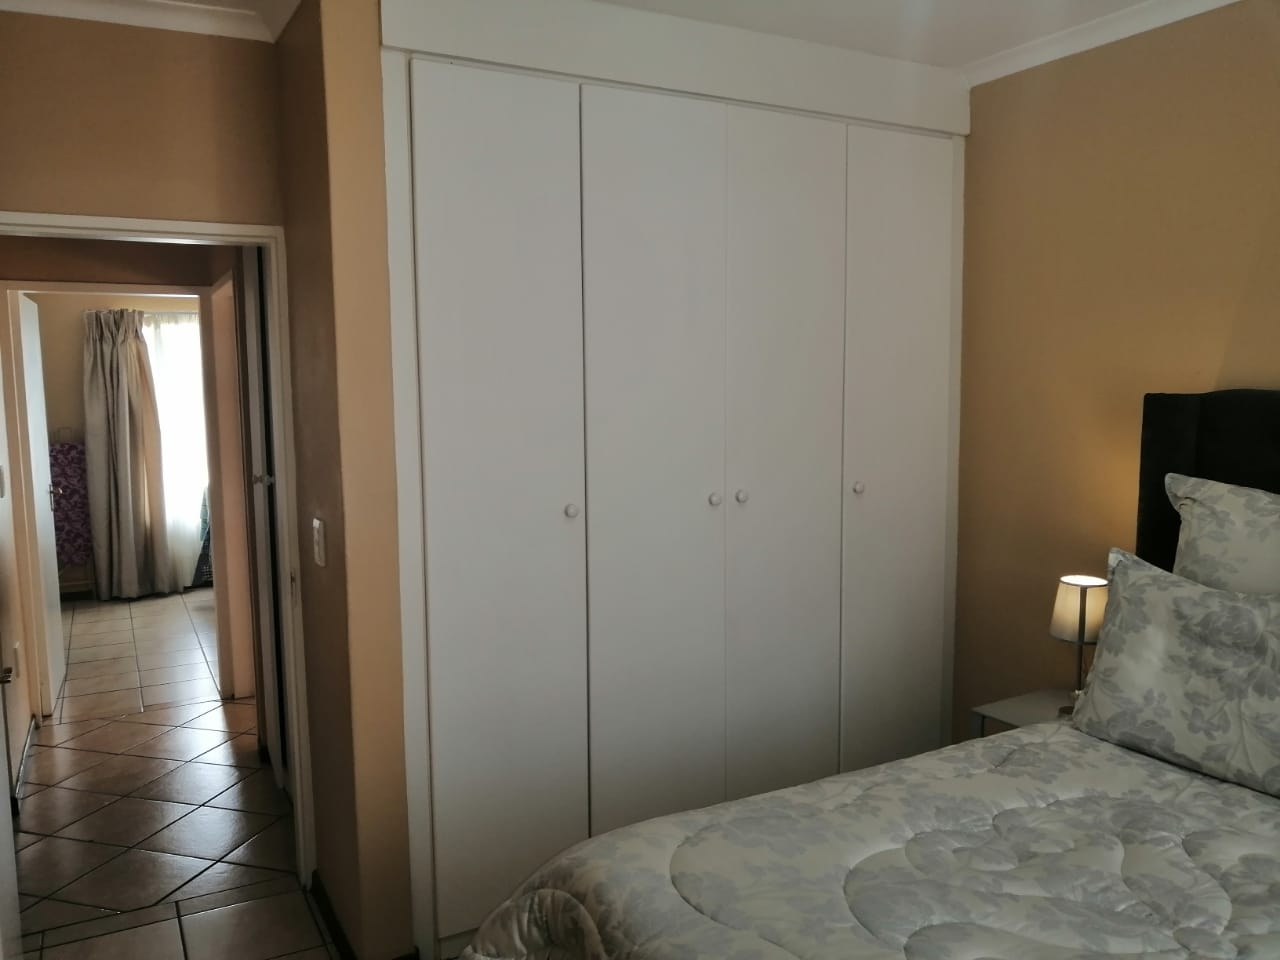 View inside main bedroom towards bedroom 2